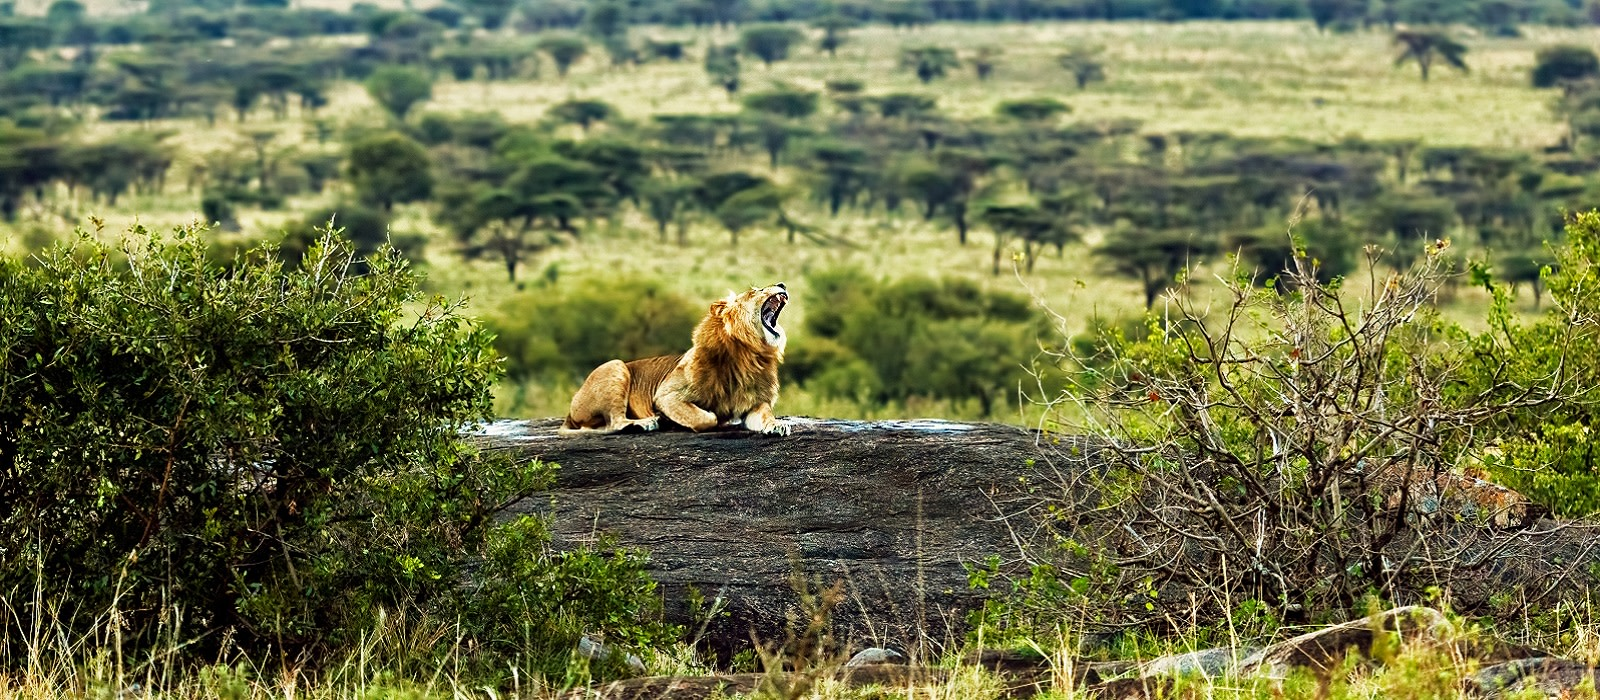 Lakeside Luxury and Wildlife in Tanzania Tour Trip 1